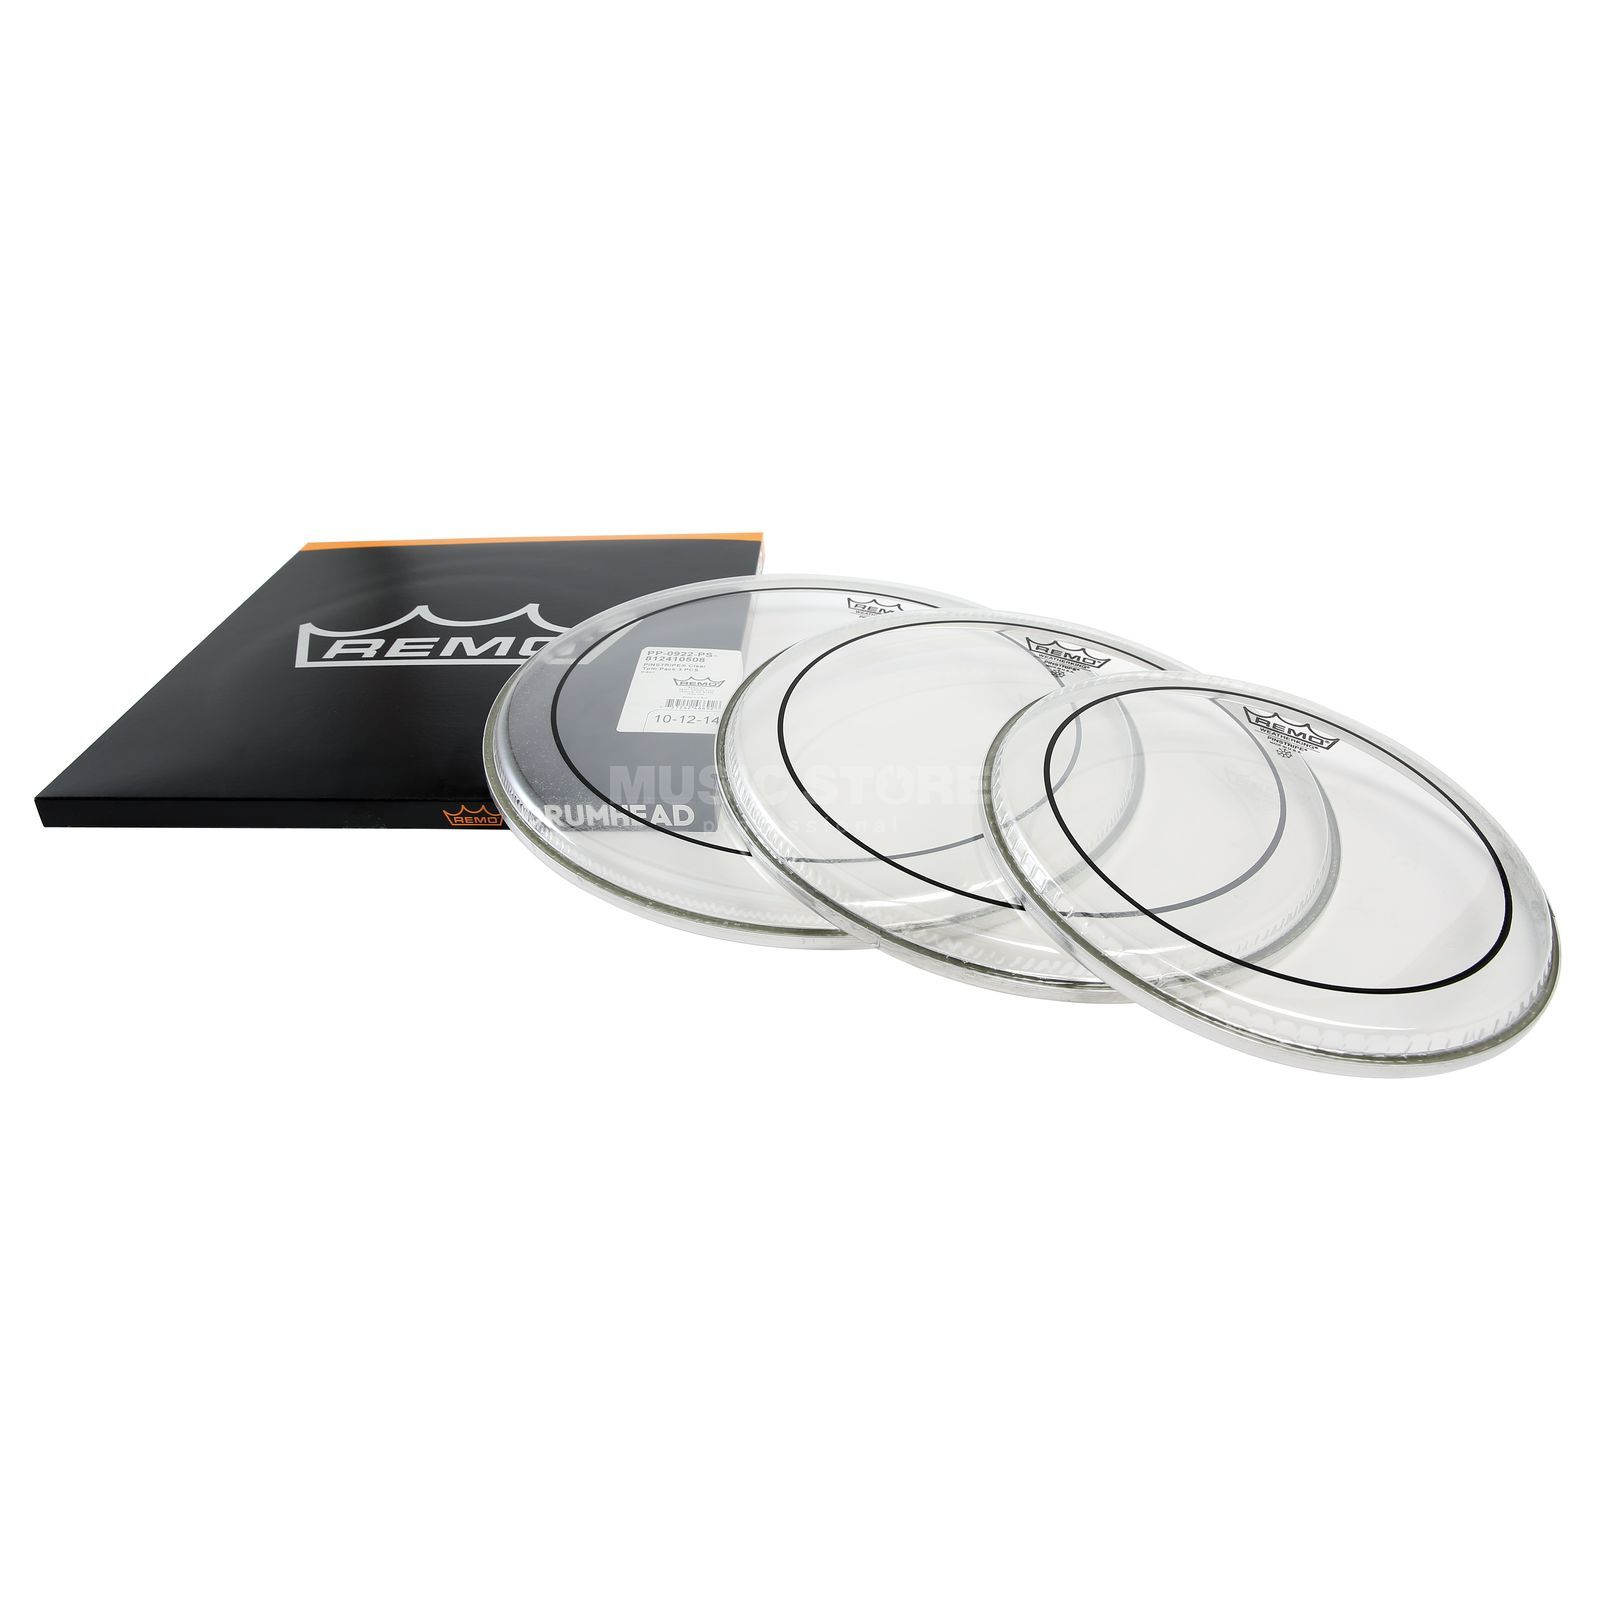 "Remo Drum Head Set Pinstripe, Clear, Standard: 12"",13"",16"" Product Image"